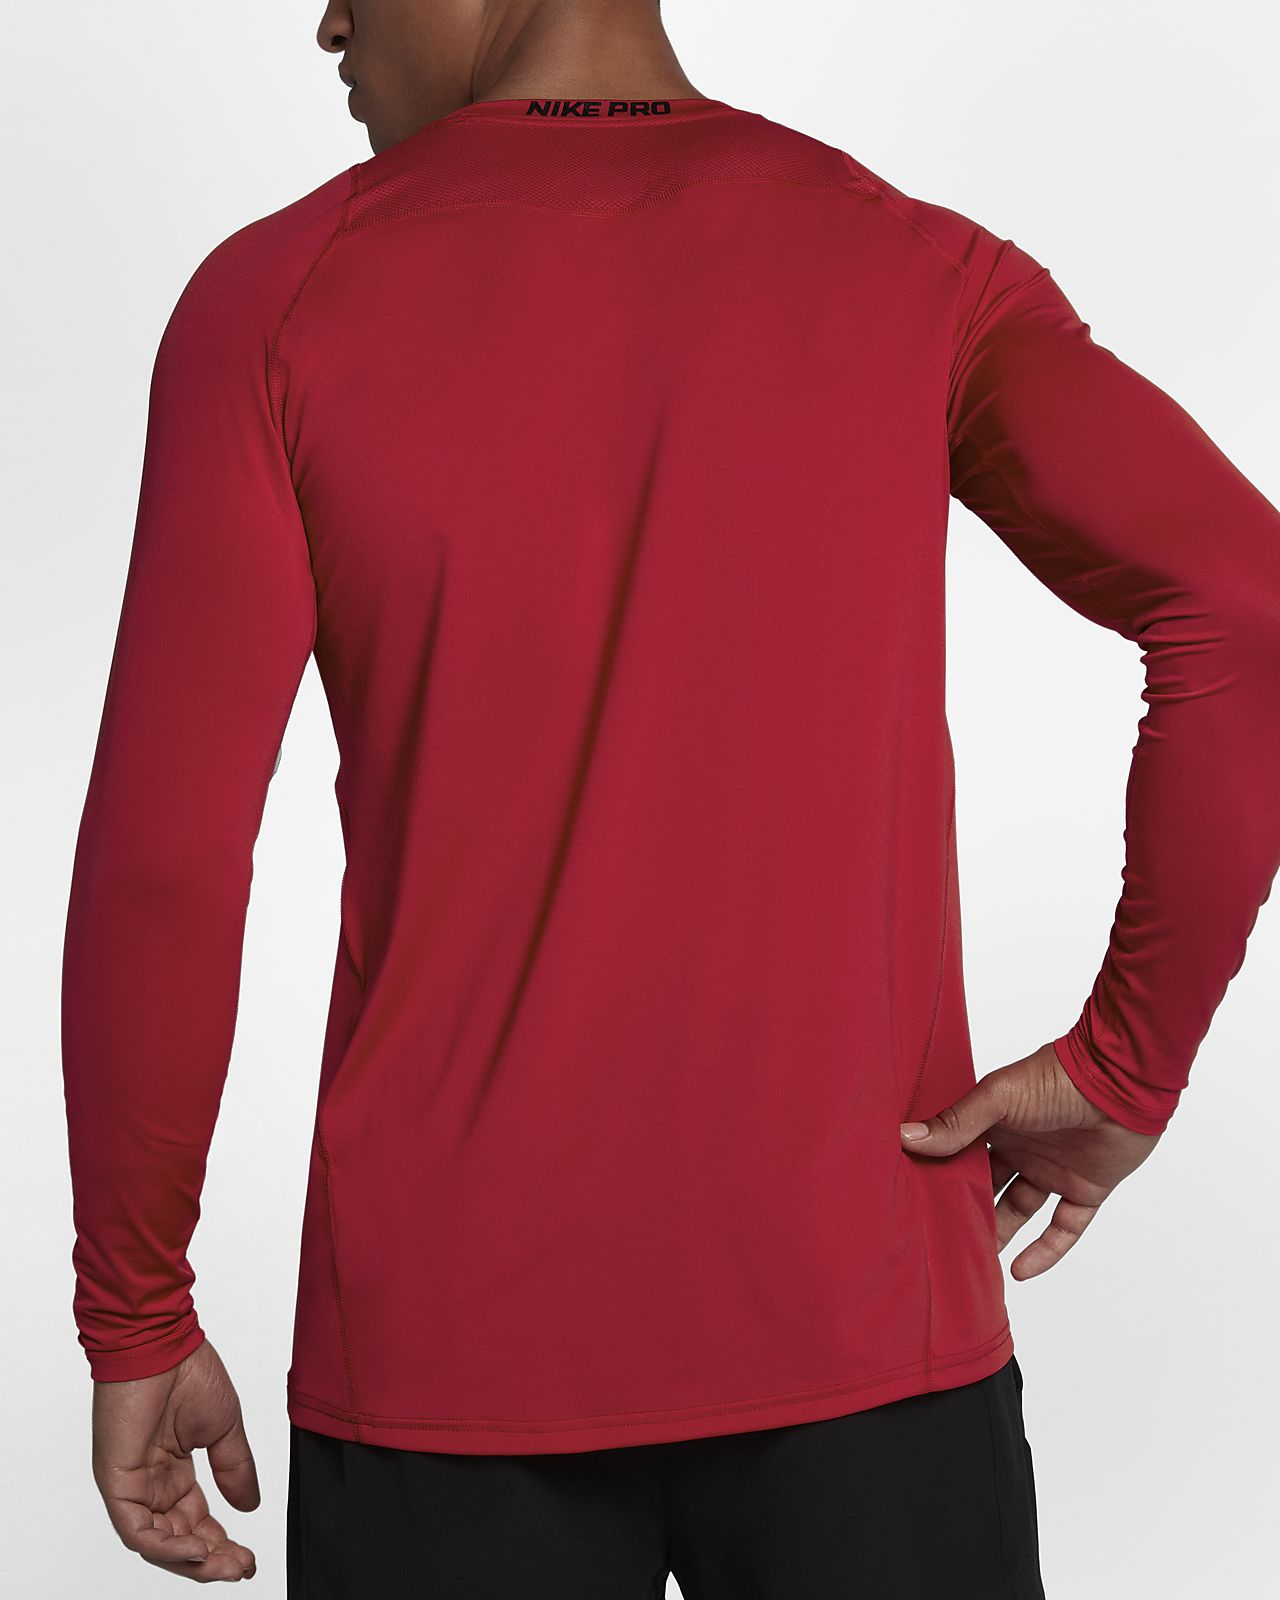 Nike Pro Top Men's Fitted Long-Sleeve Top